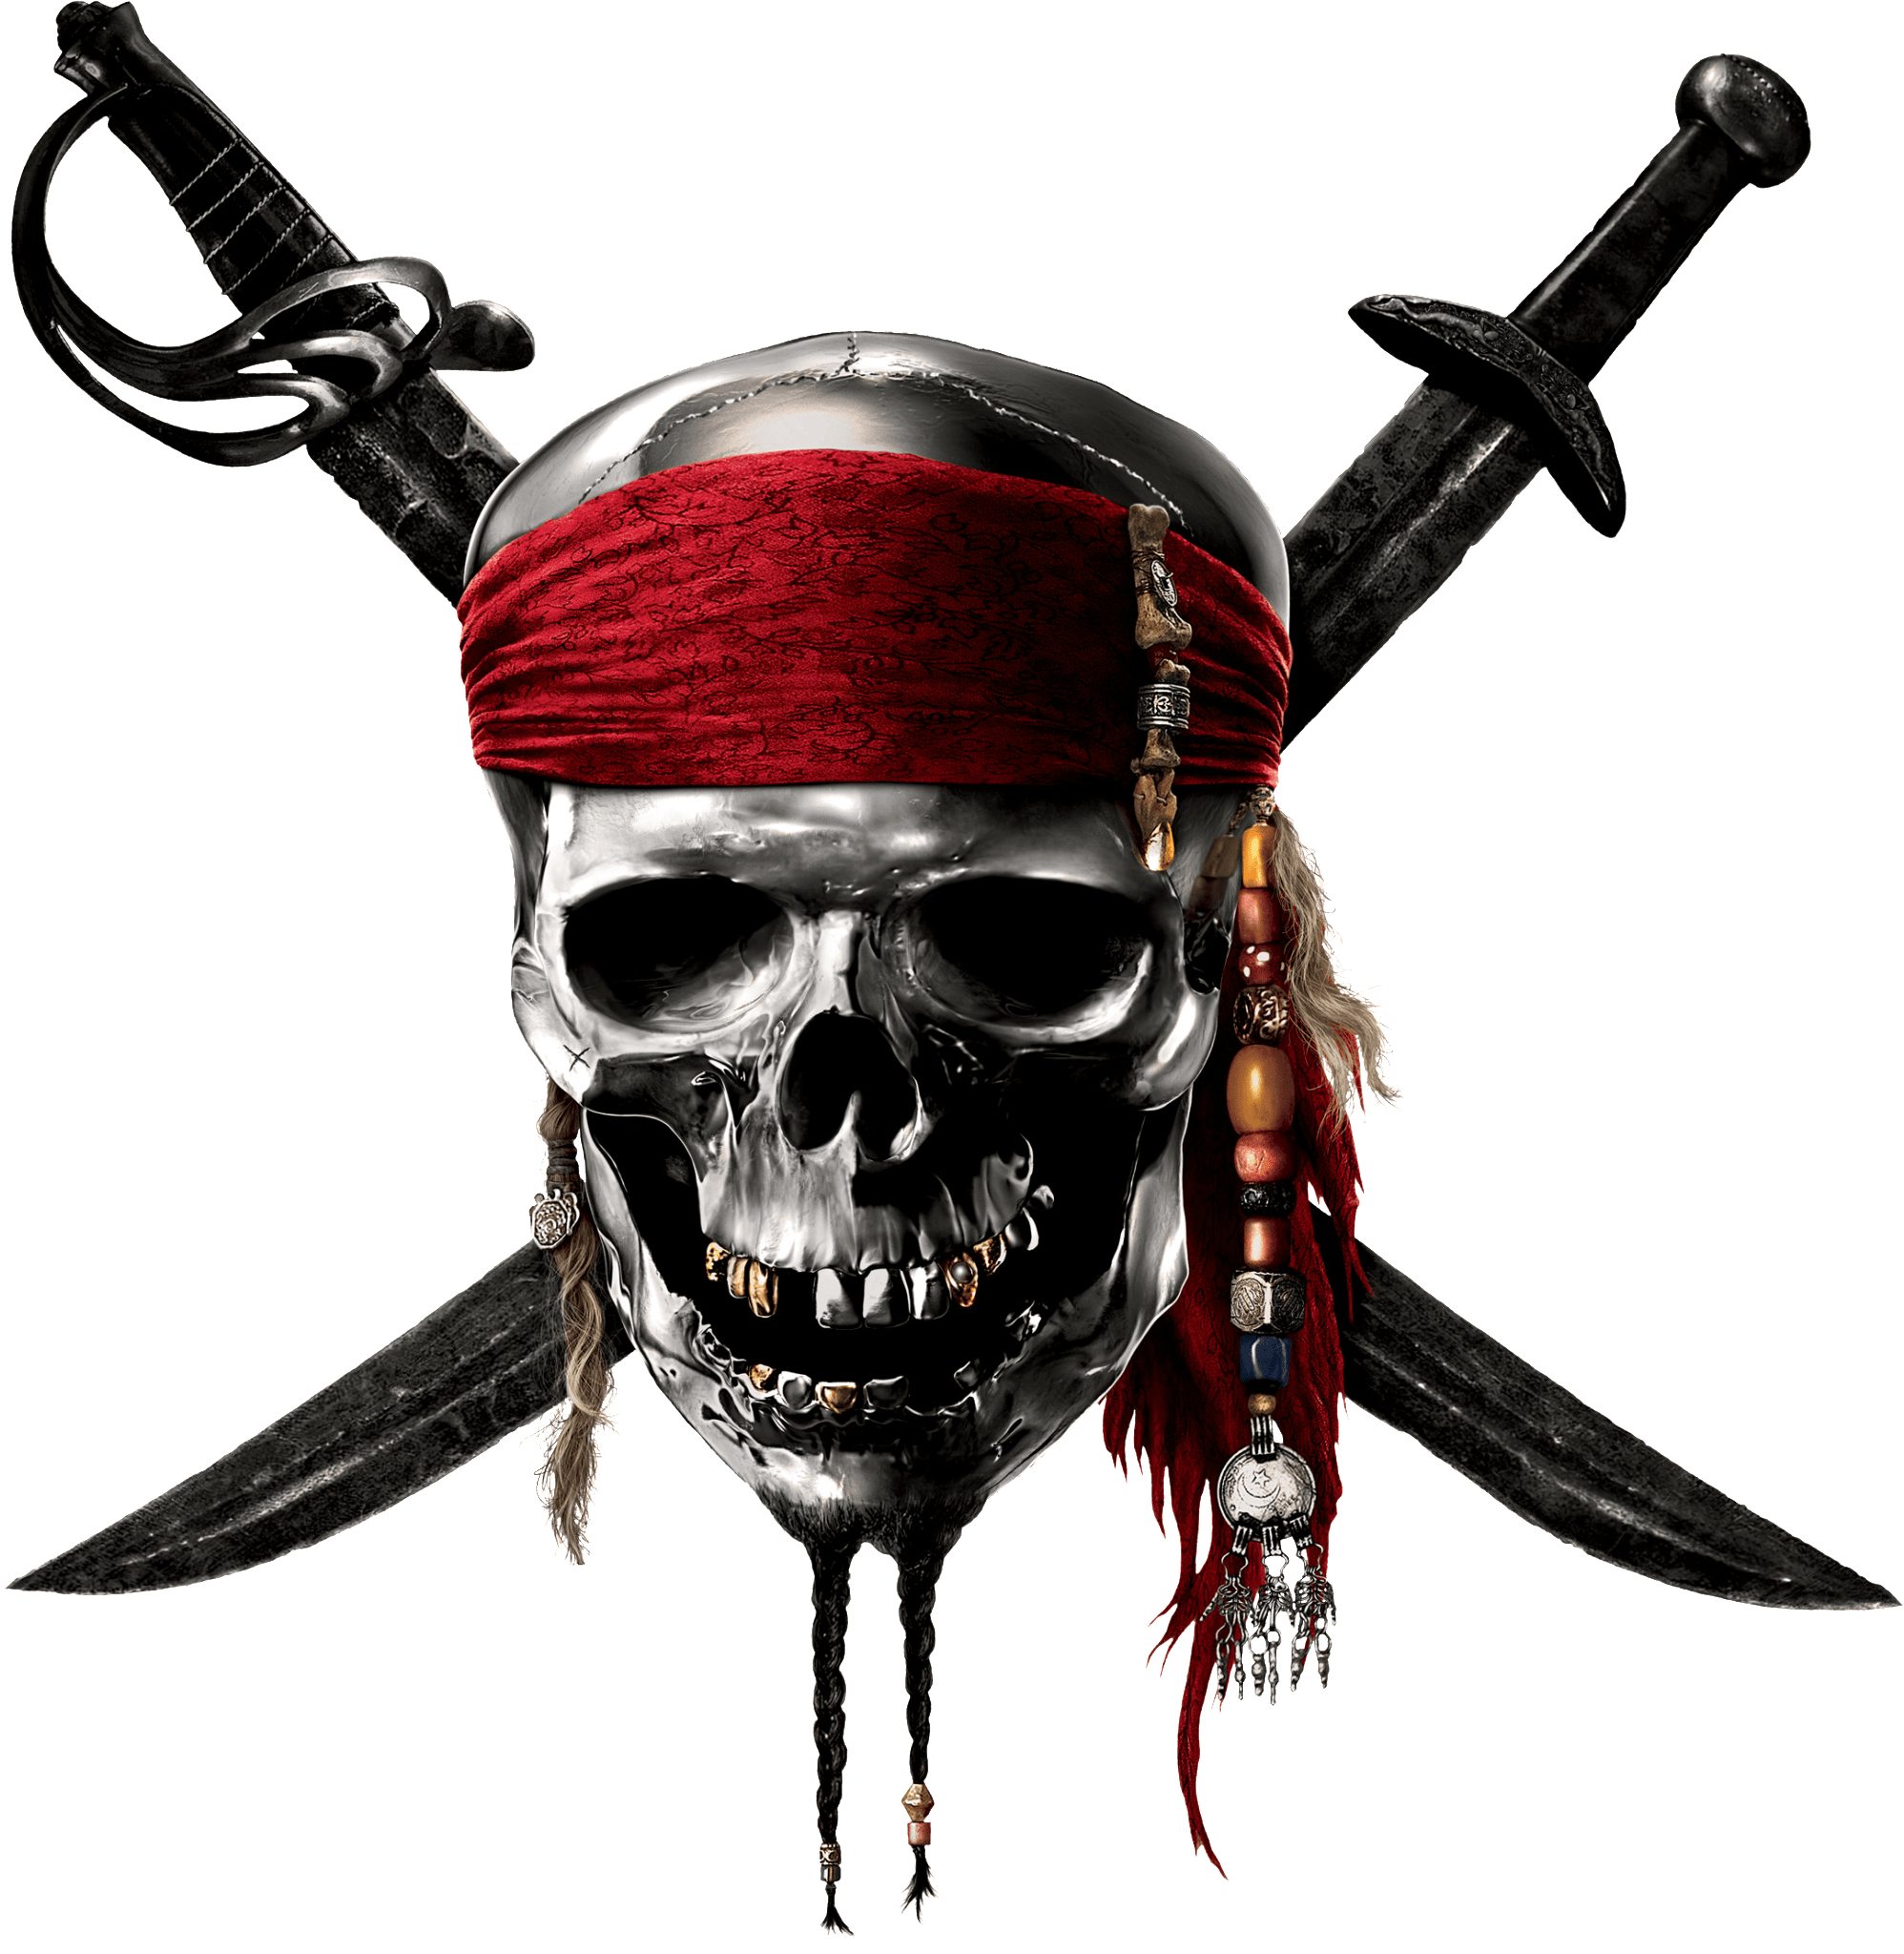 Pirate clipart sword. Pirates of the caribbean